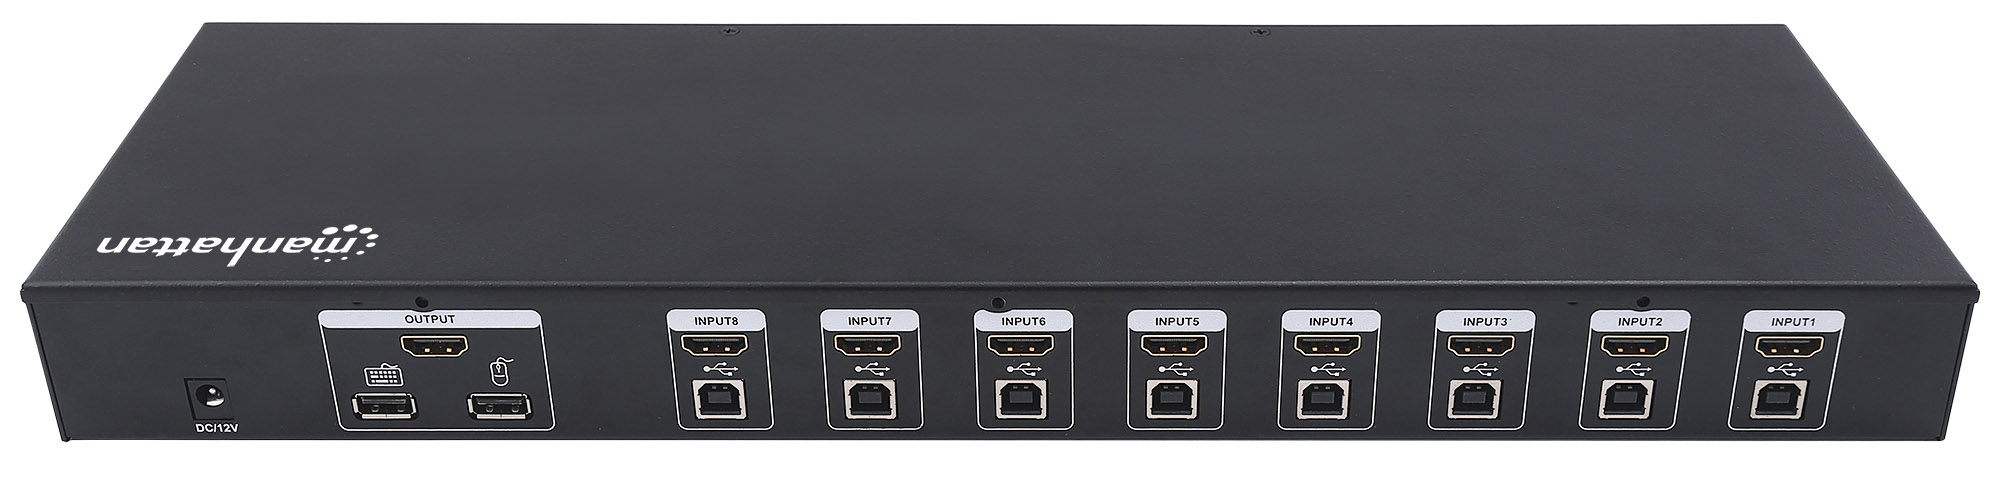 8-Port HDMI KVM Switch